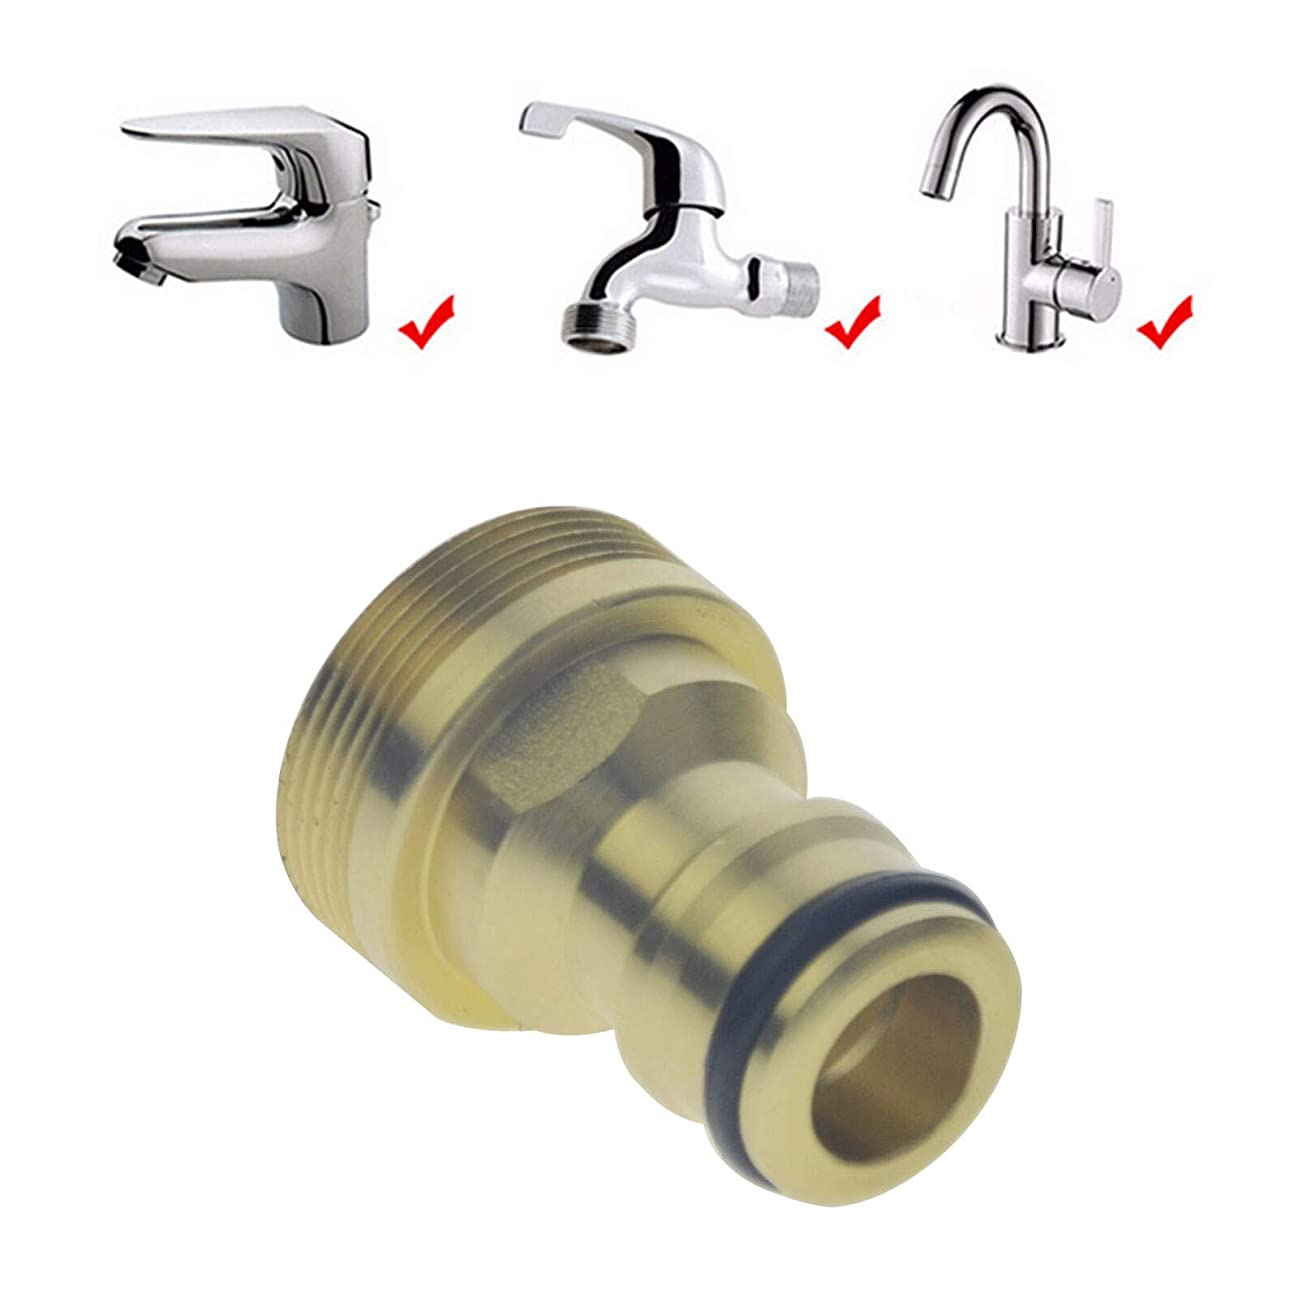 toyofmine Universal Kitchen Tap Connector Mixer Garden Hose Pipe Adapter Joiner Fitting mpfee368710